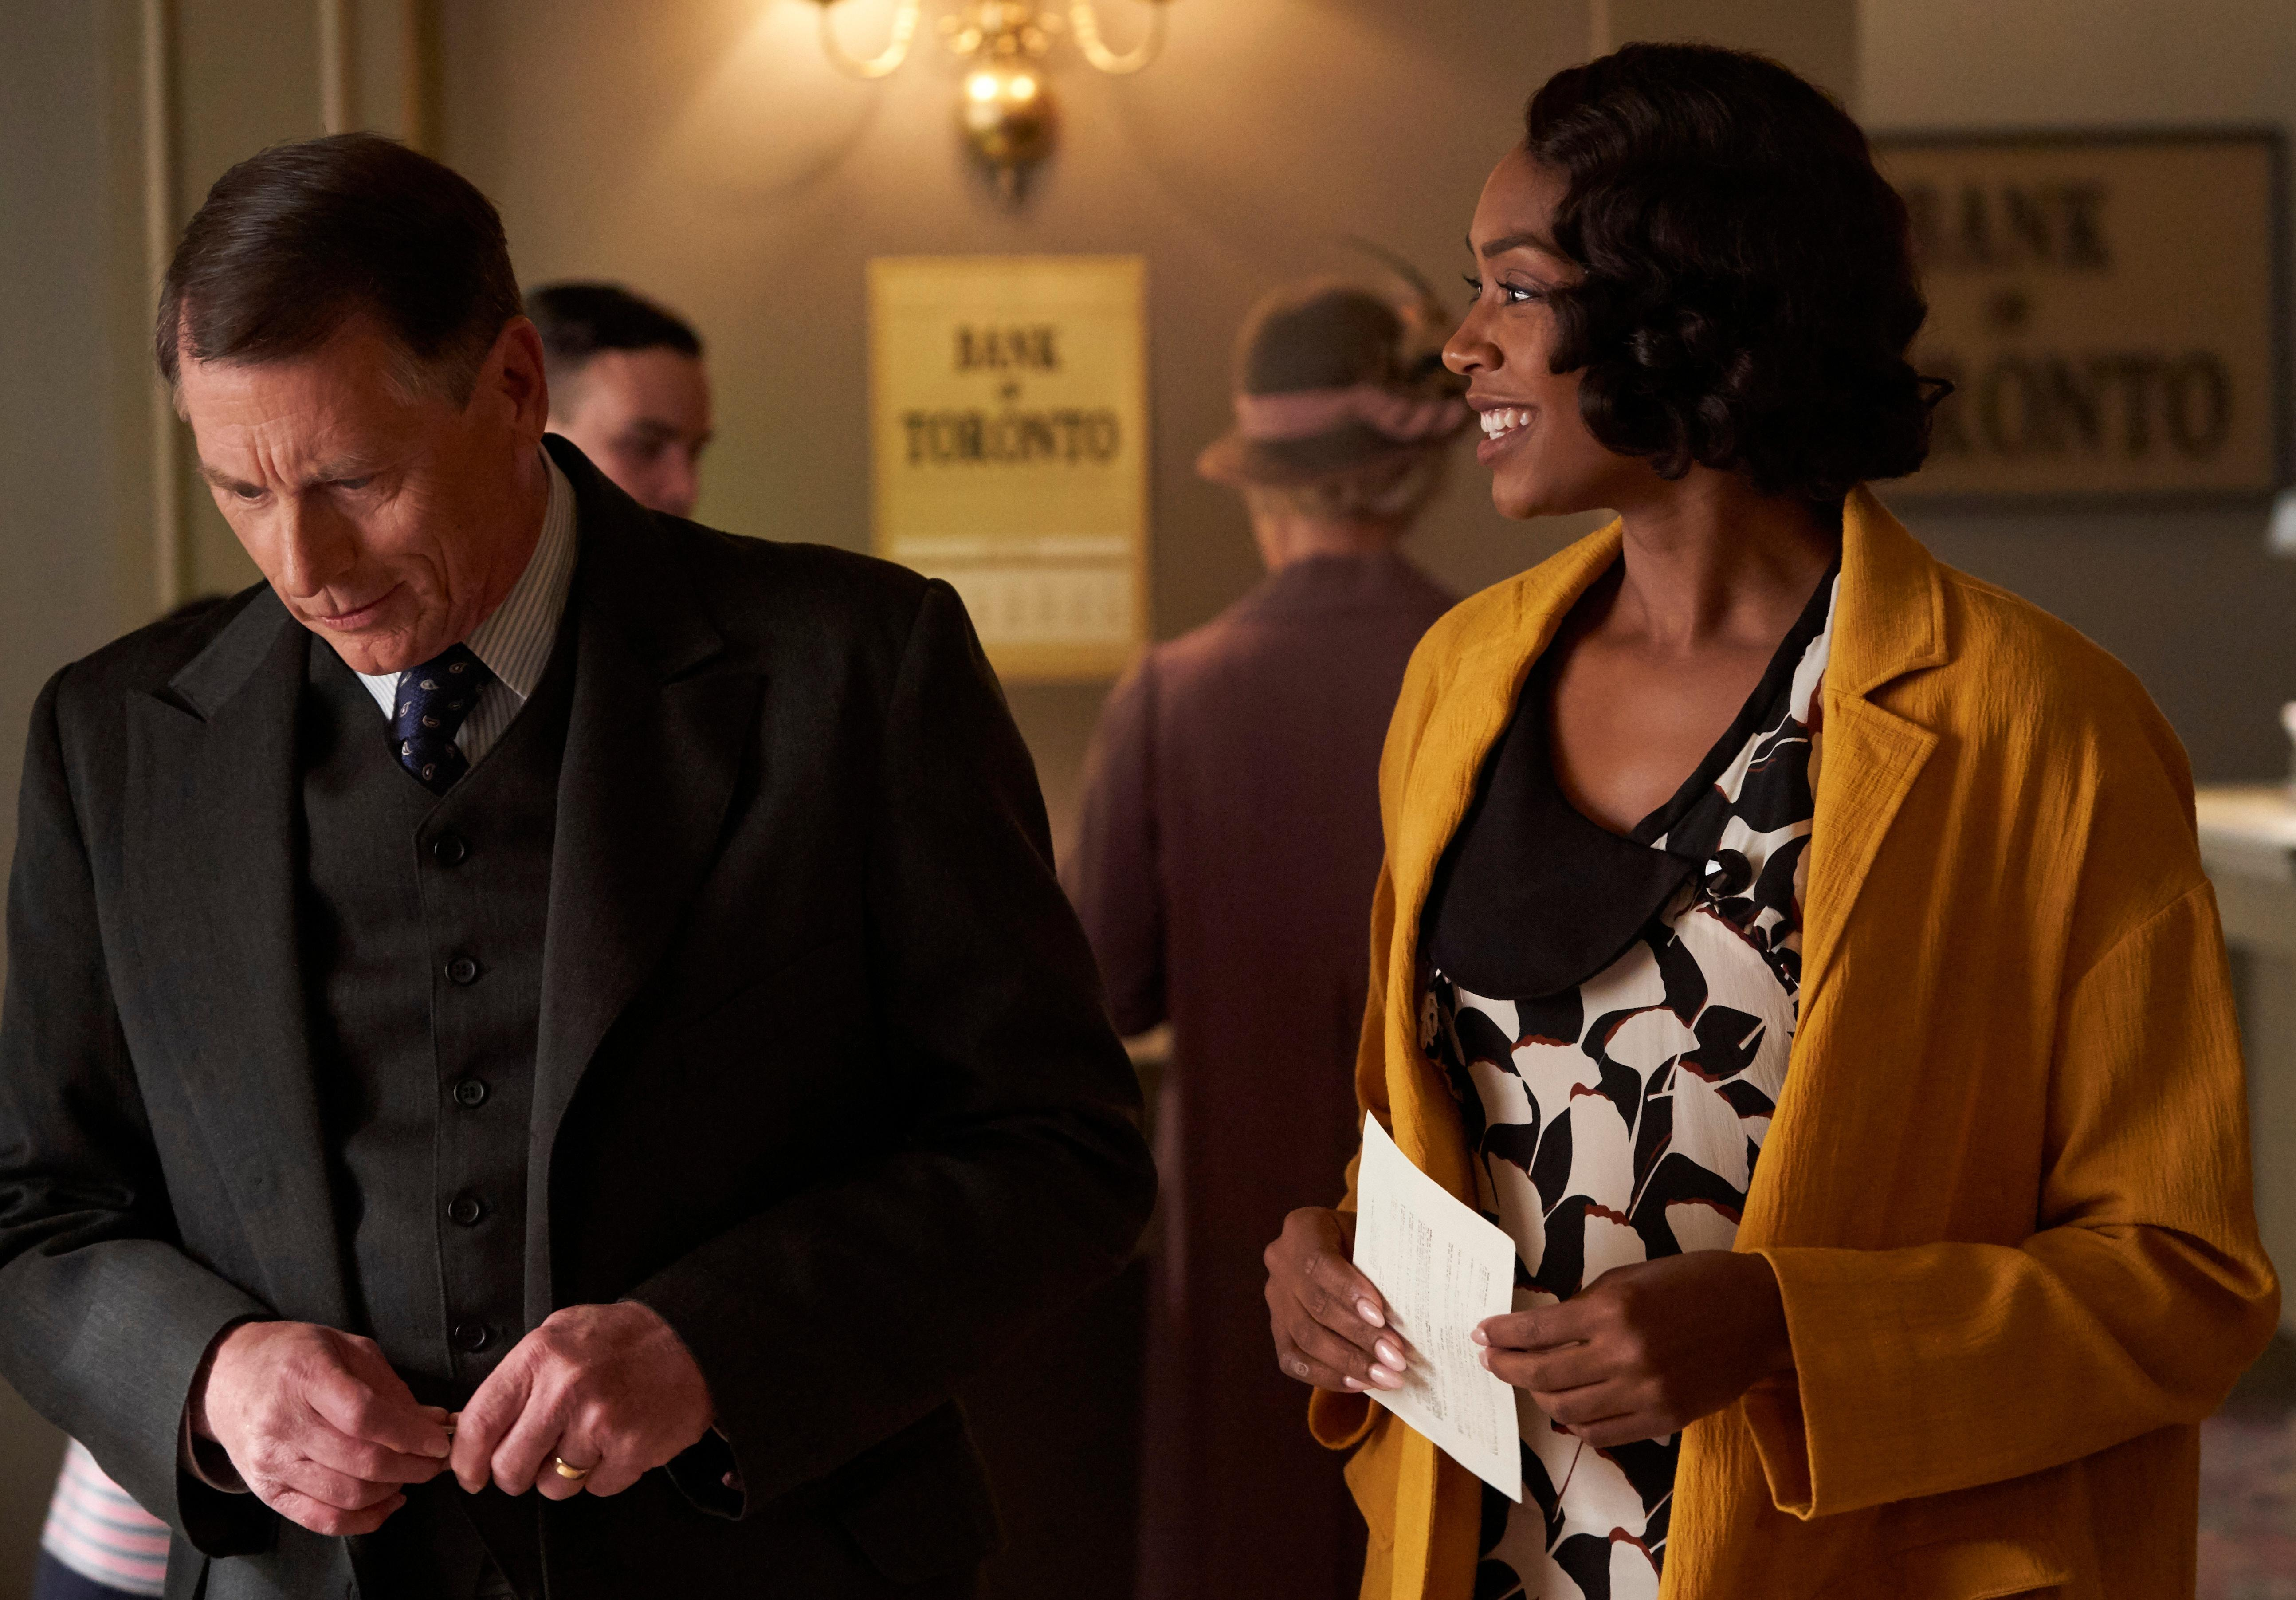 Detective Drake stands next to a woman holding a piece of paper